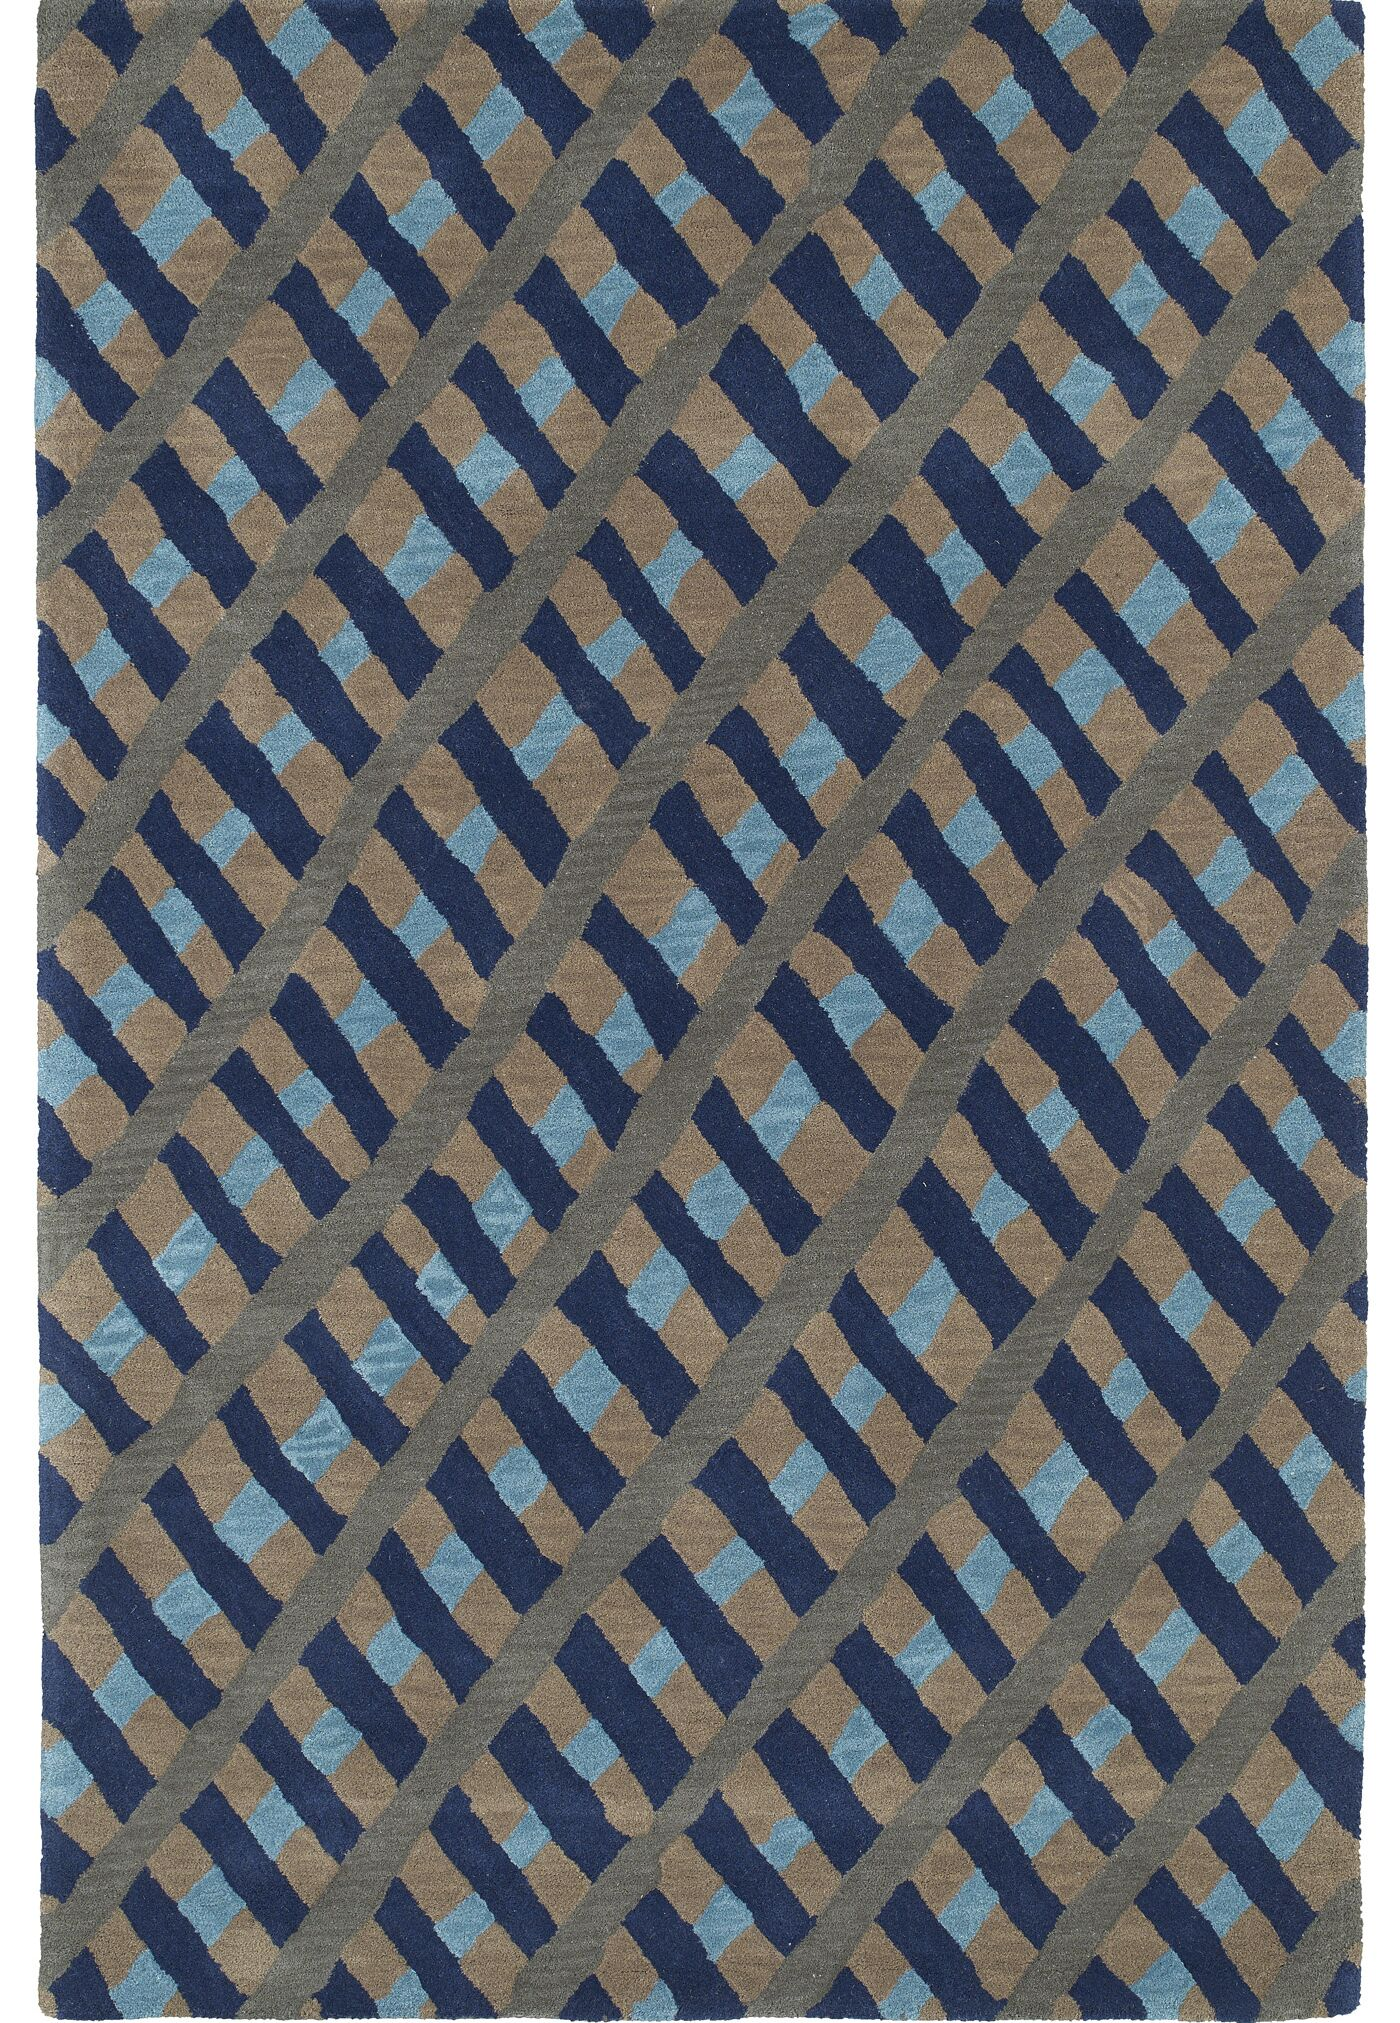 Schafer Hand Tufted Blue/Brown Area Rug Rug Size: Rectangle 8' x 10'